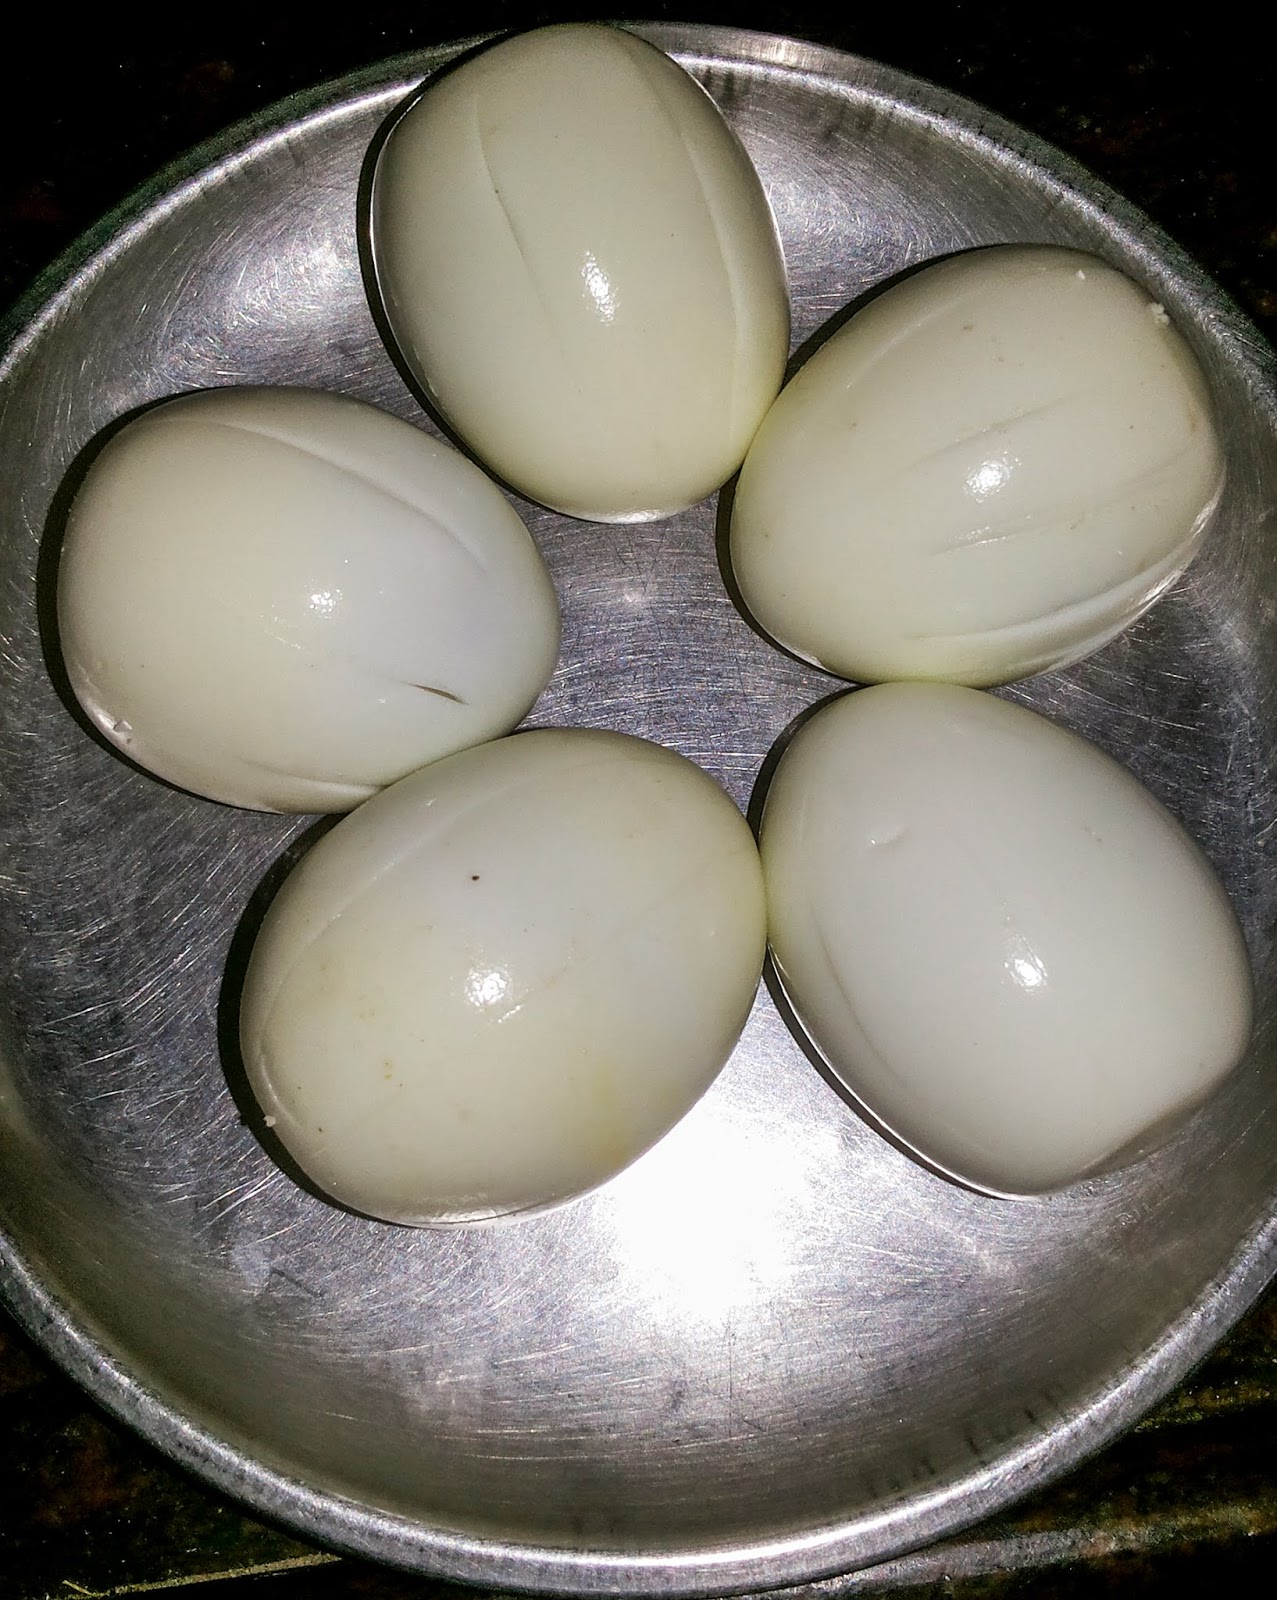 Slit Egg Vertically